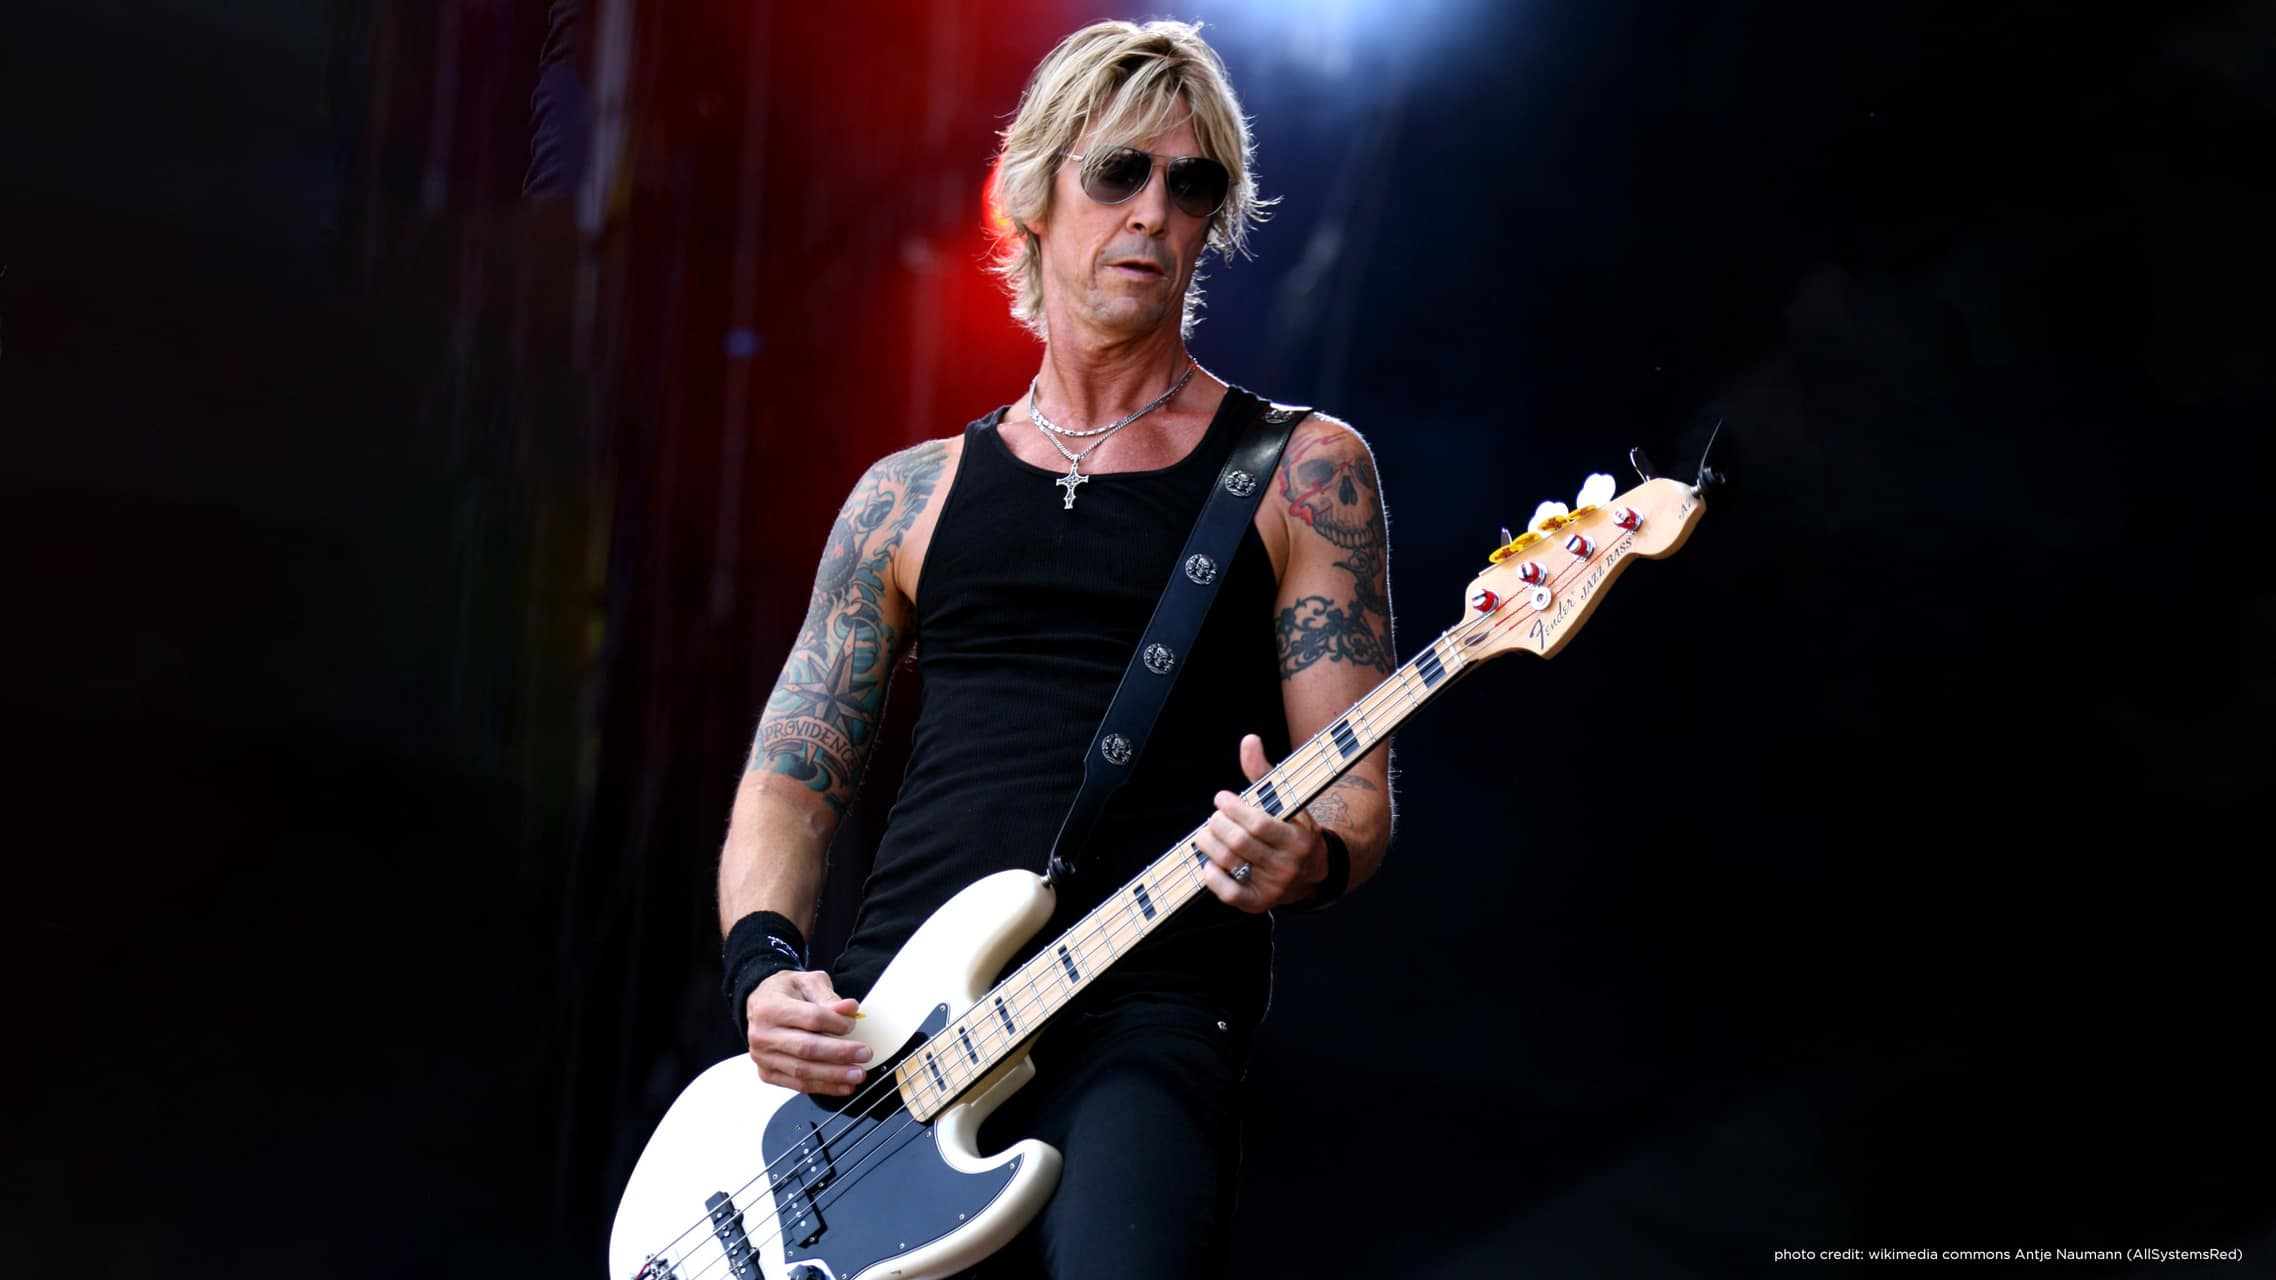 Guns N' Roses' Duff McKagan Reveals New Song and Album, Tour Details